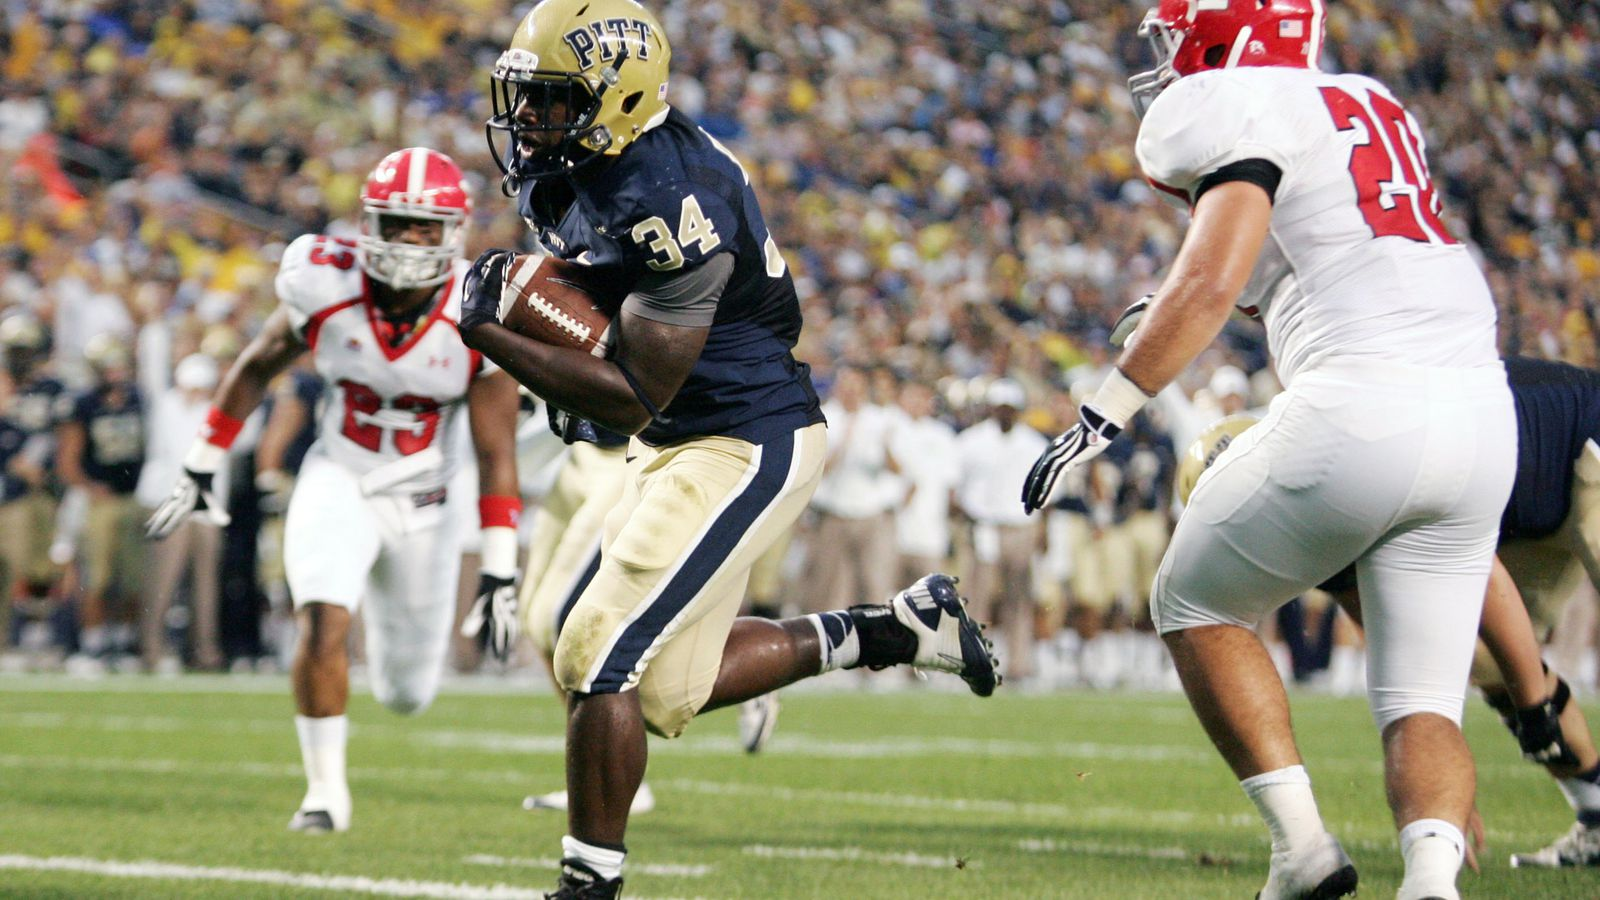 What Does Rushel Shells Emergence Mean For Pitts Isaac Bennett - Sb Nation Pittsburgh-2726